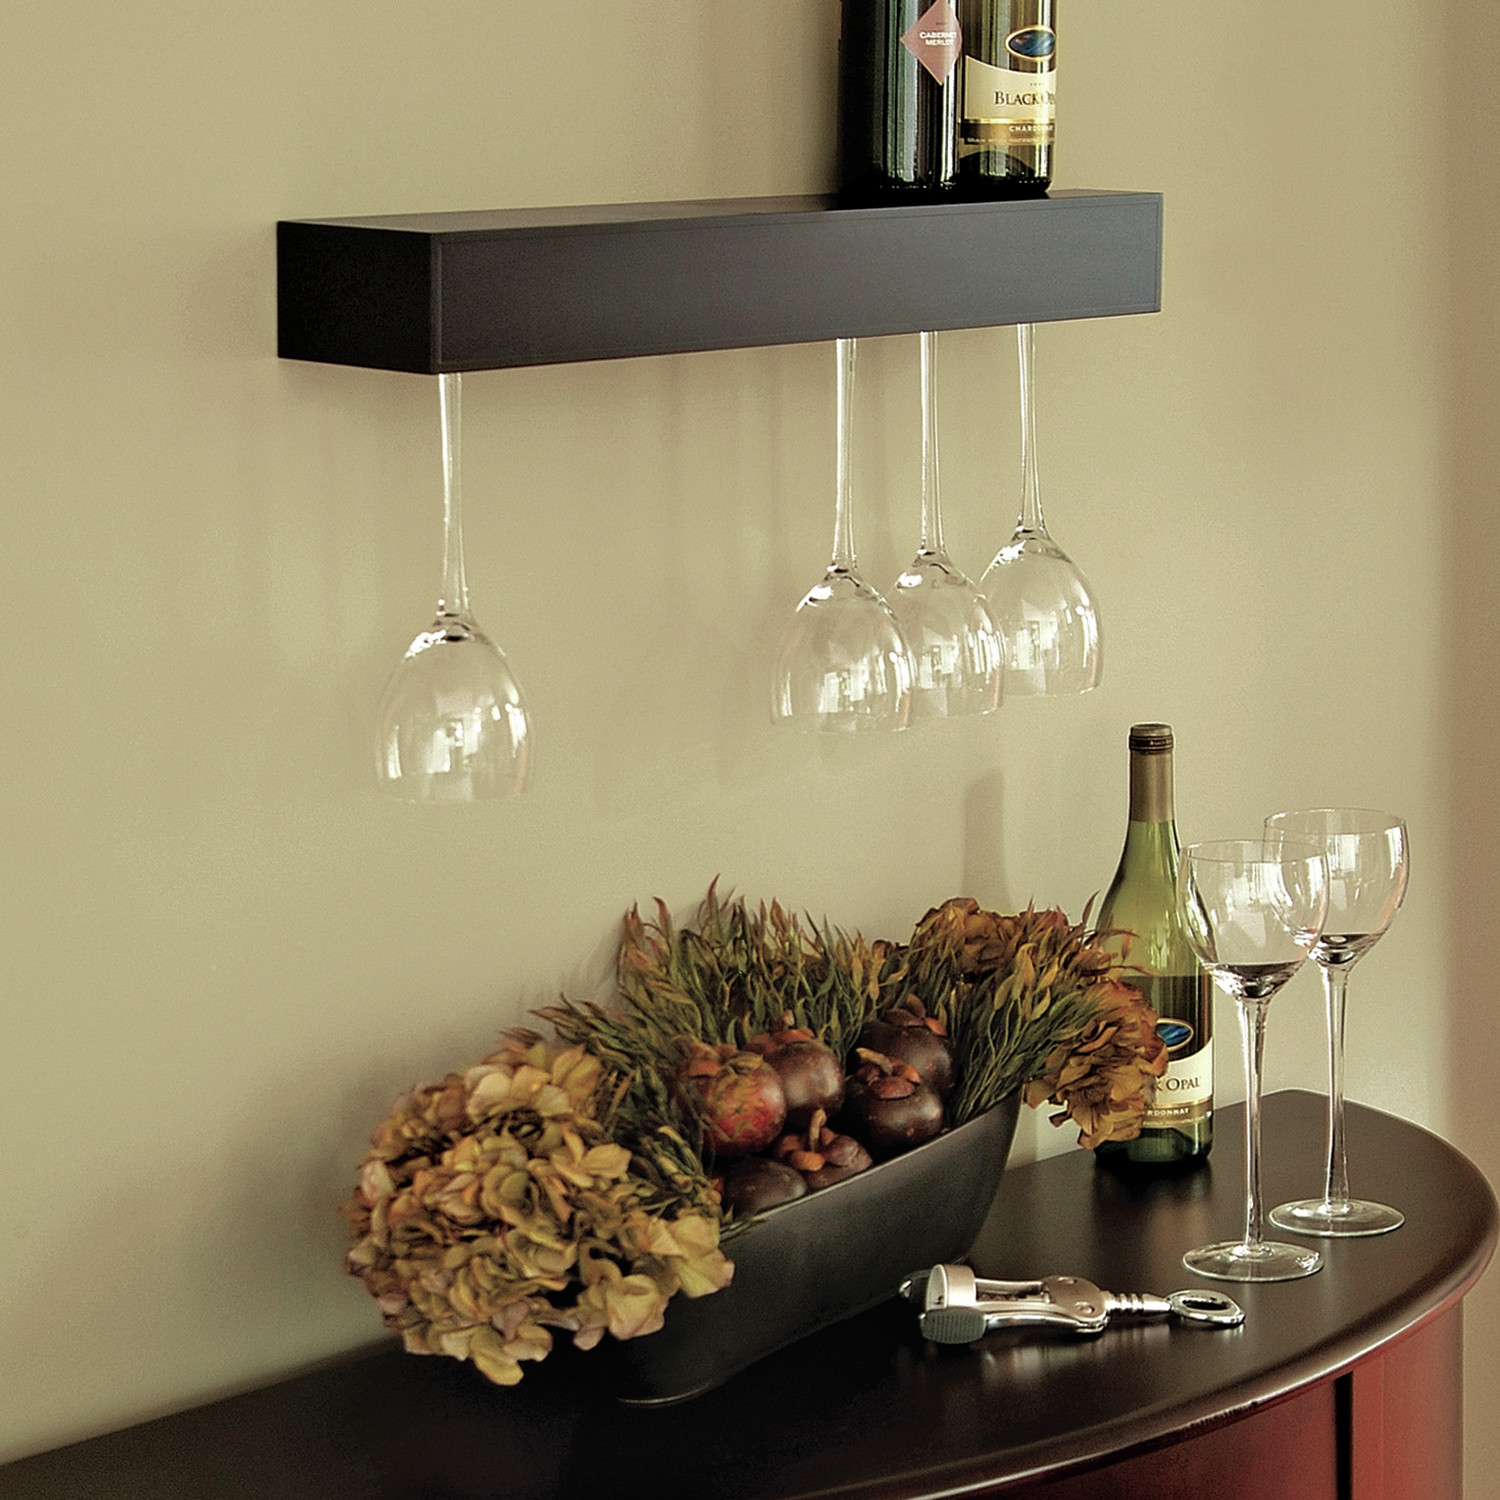 Cool Wall Mounted Wine Glass Holder